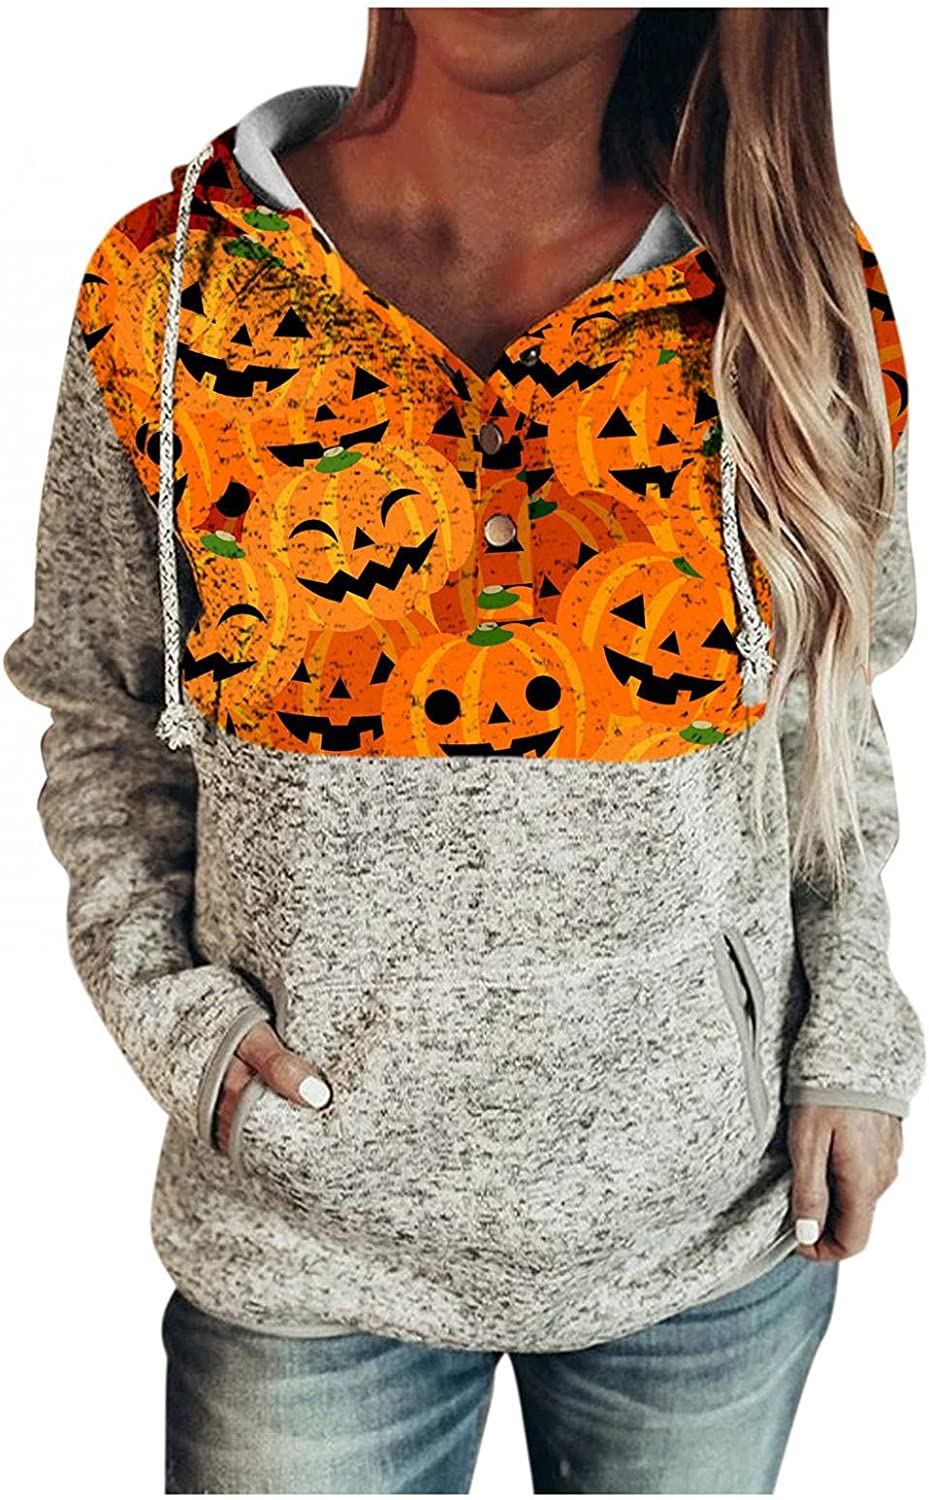 Gibobby Hoodies for Women Pullover Drawstring Oversized Sweaters Lightweight Halloween Printed Long Sleeve Button Sweatshirts